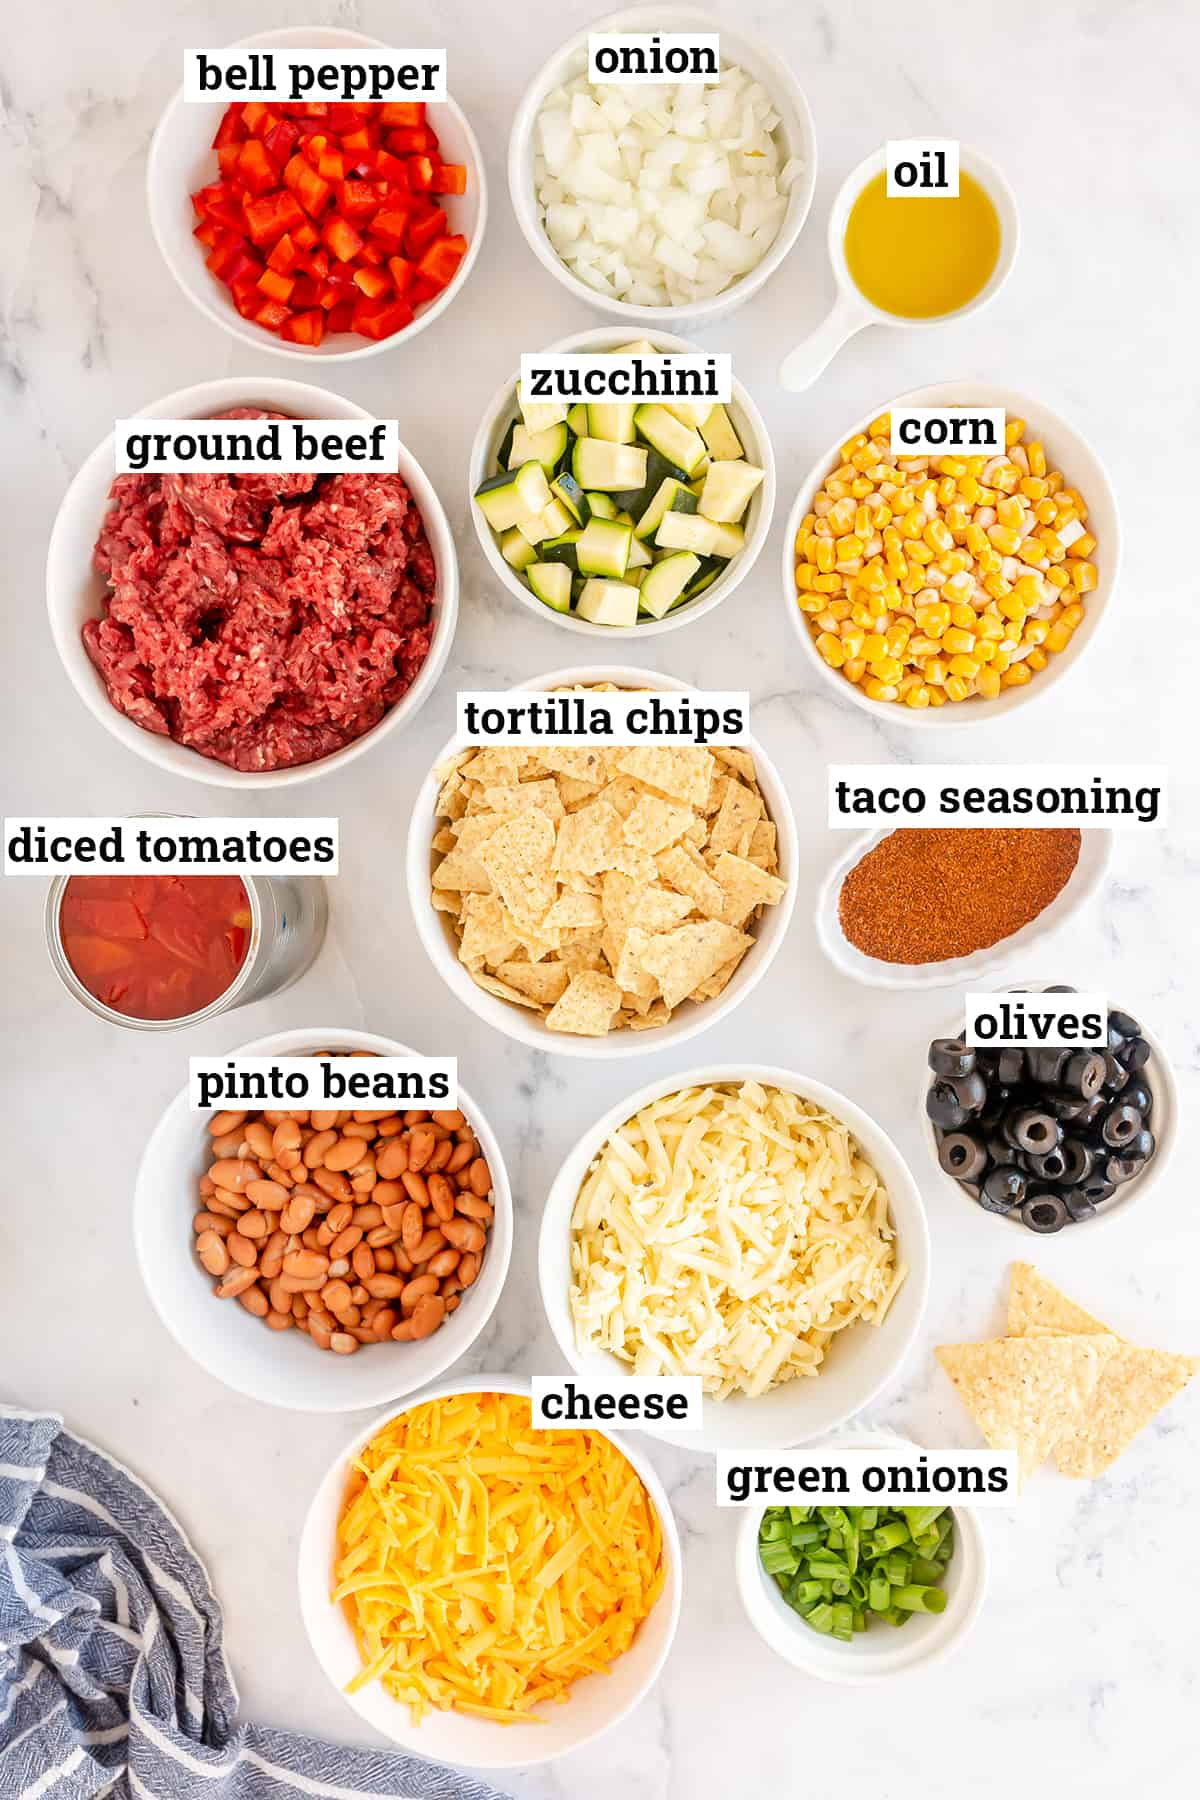 Ingredients for Beef and Vegetable Taco Bake